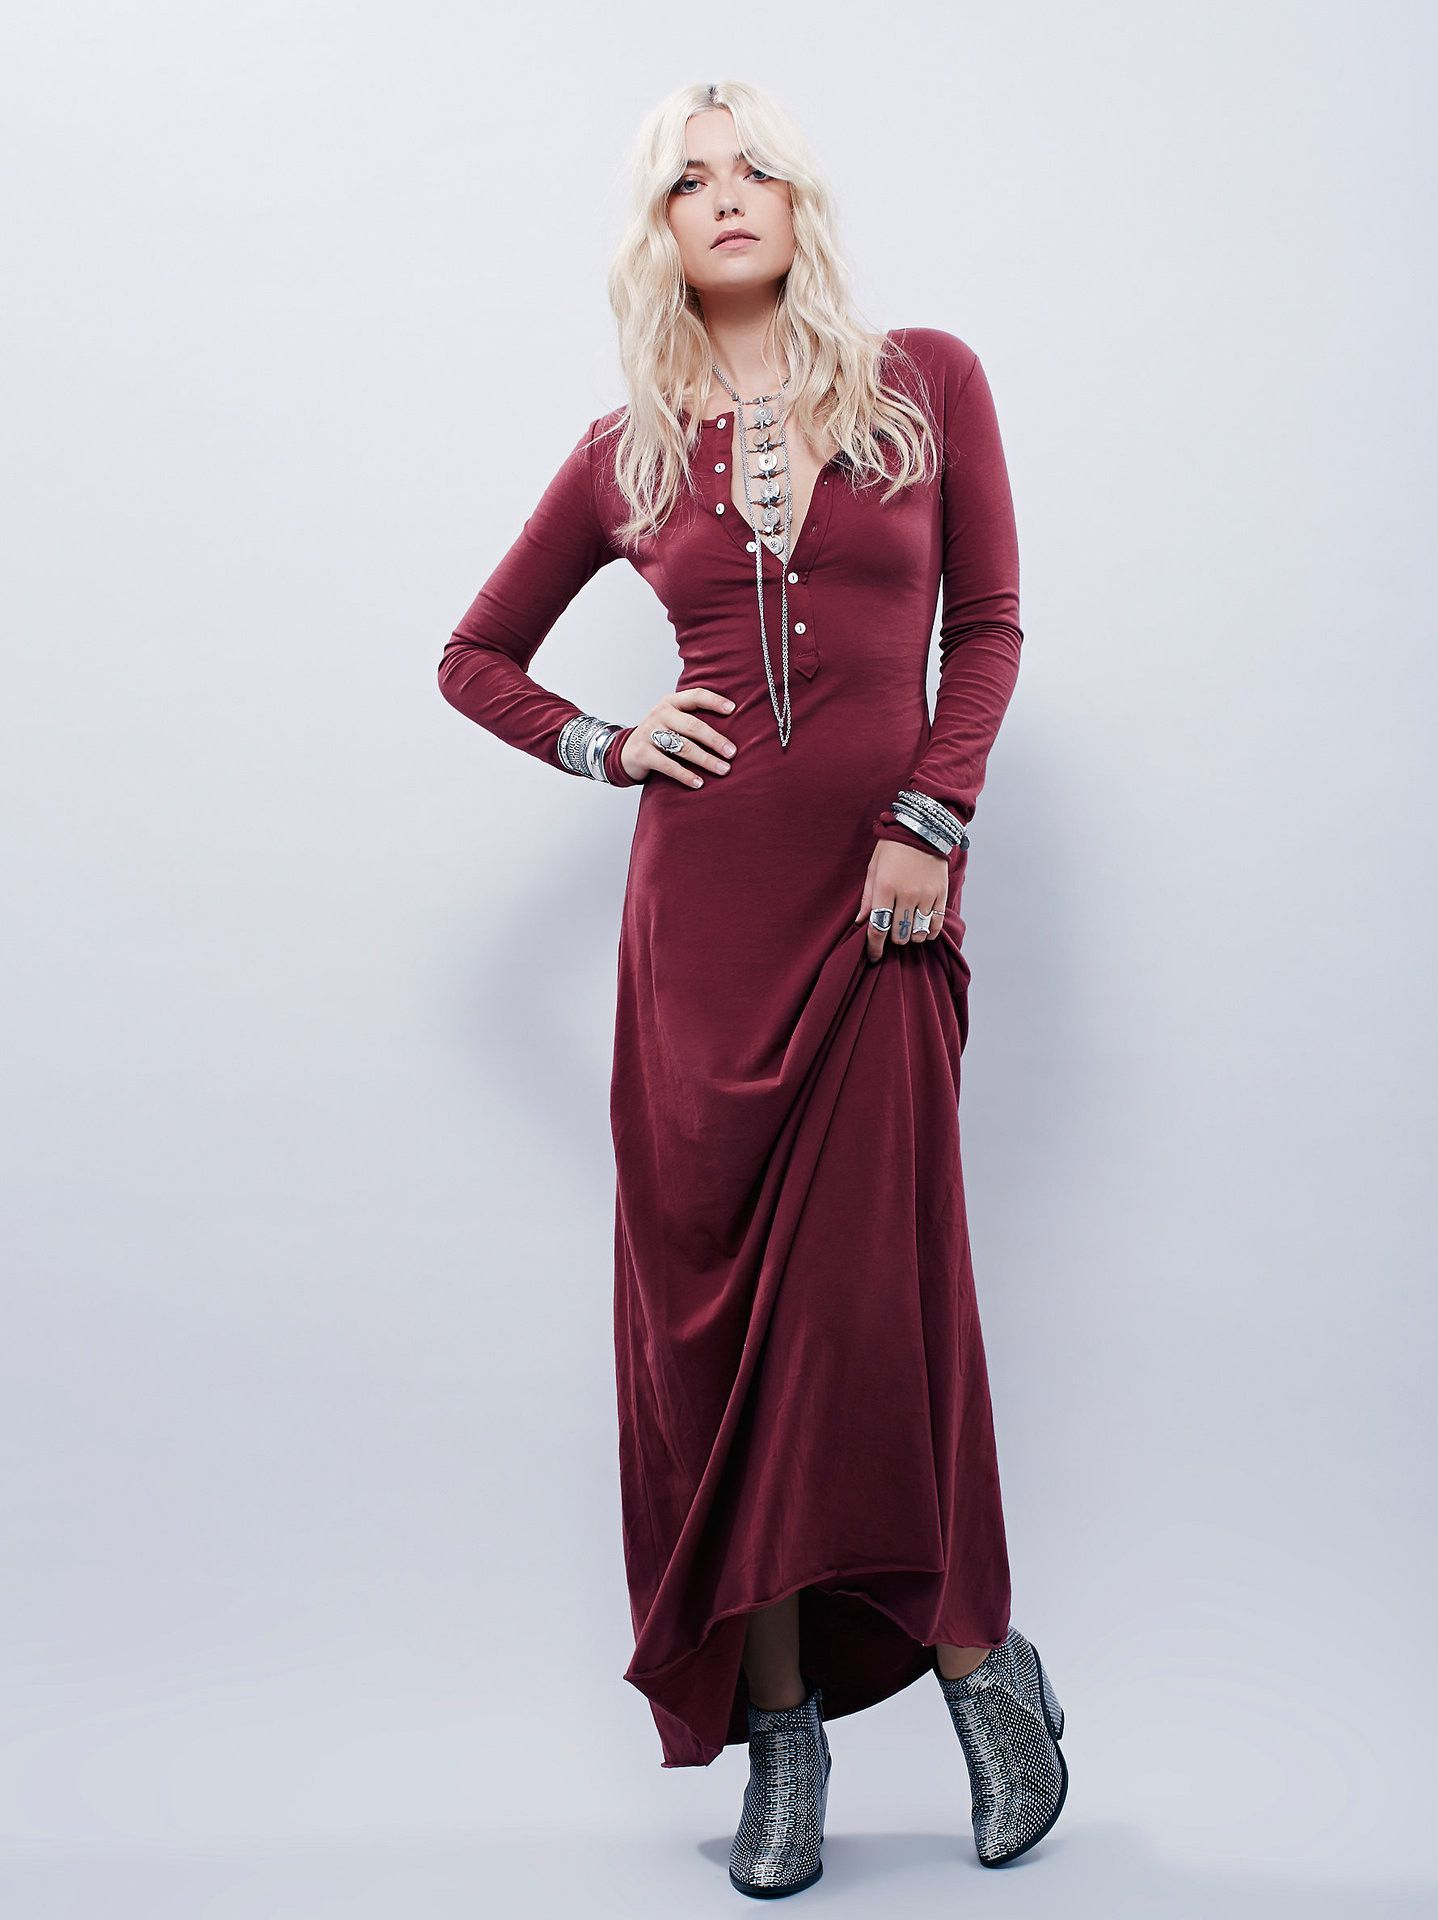 Feels Like Fall A Slender Fitting Long Sleeve Button Up Front Maxi Dress For The Simple American Boho Girl Maxi Dress Boho Maxi Dress Burgundy Maxi Dress [ 1920 x 1438 Pixel ]